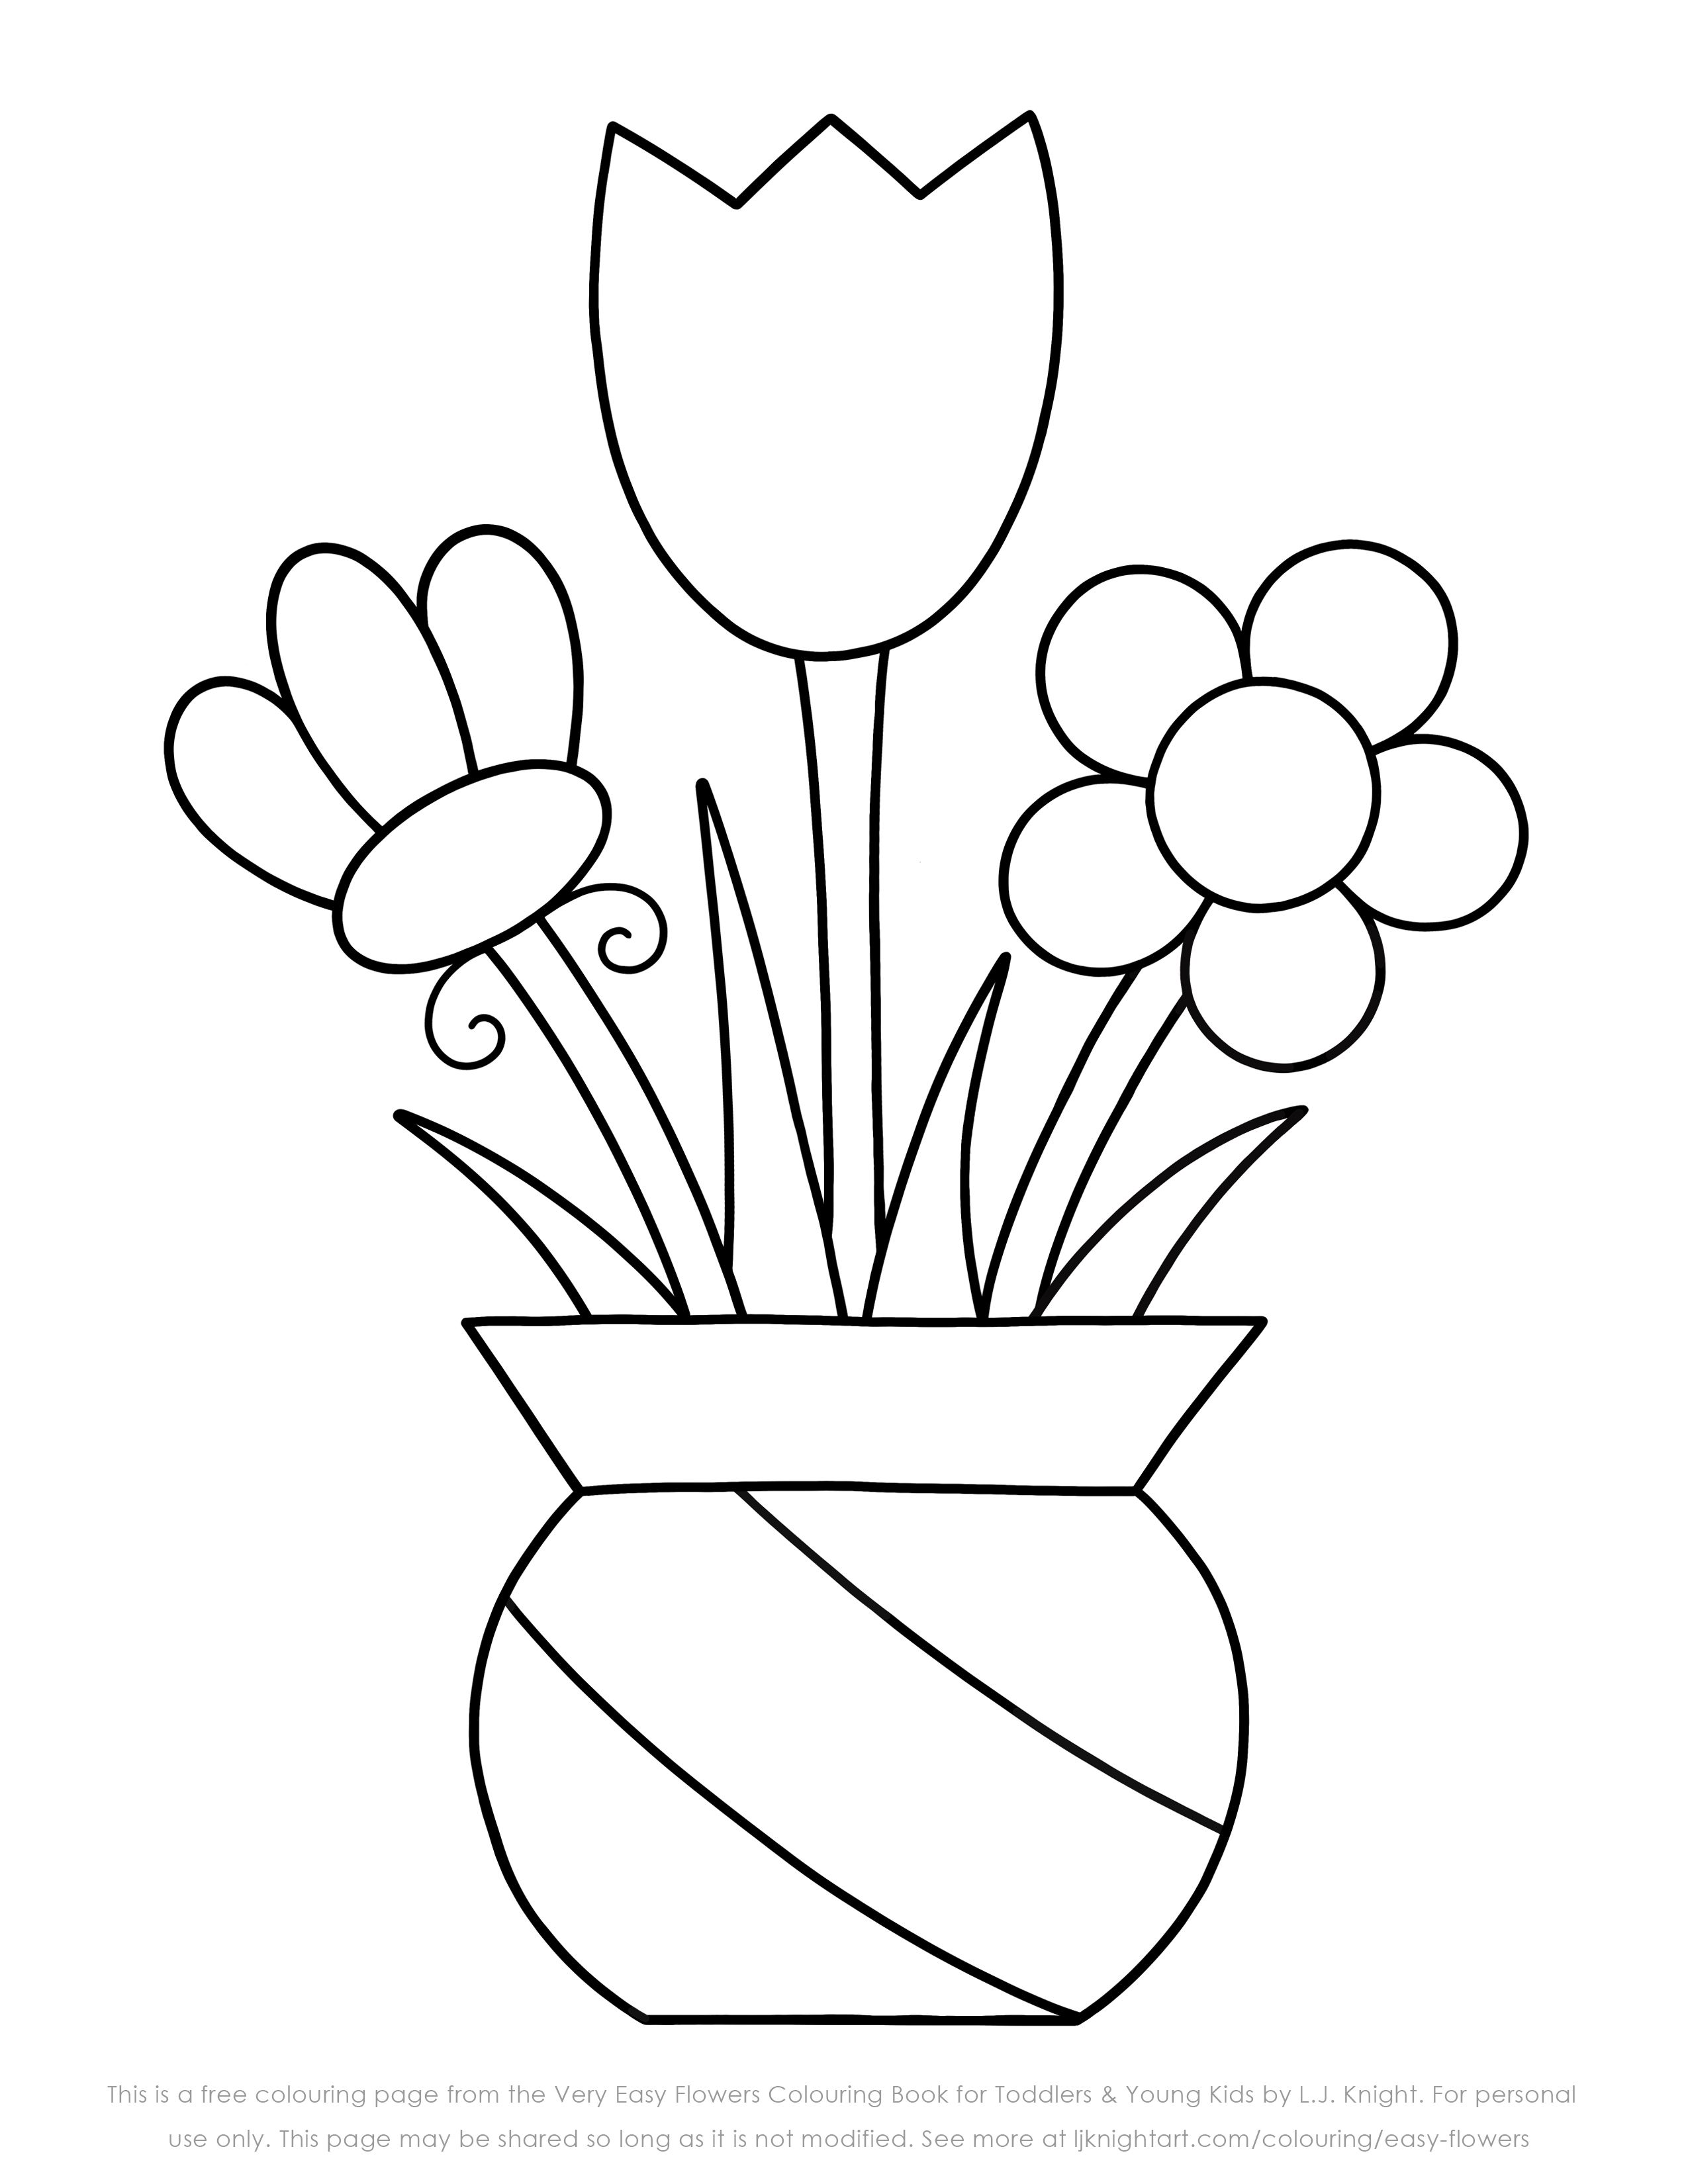 Free Very Easy Flowers Colouring Page   Free coloring pages, Easy ...